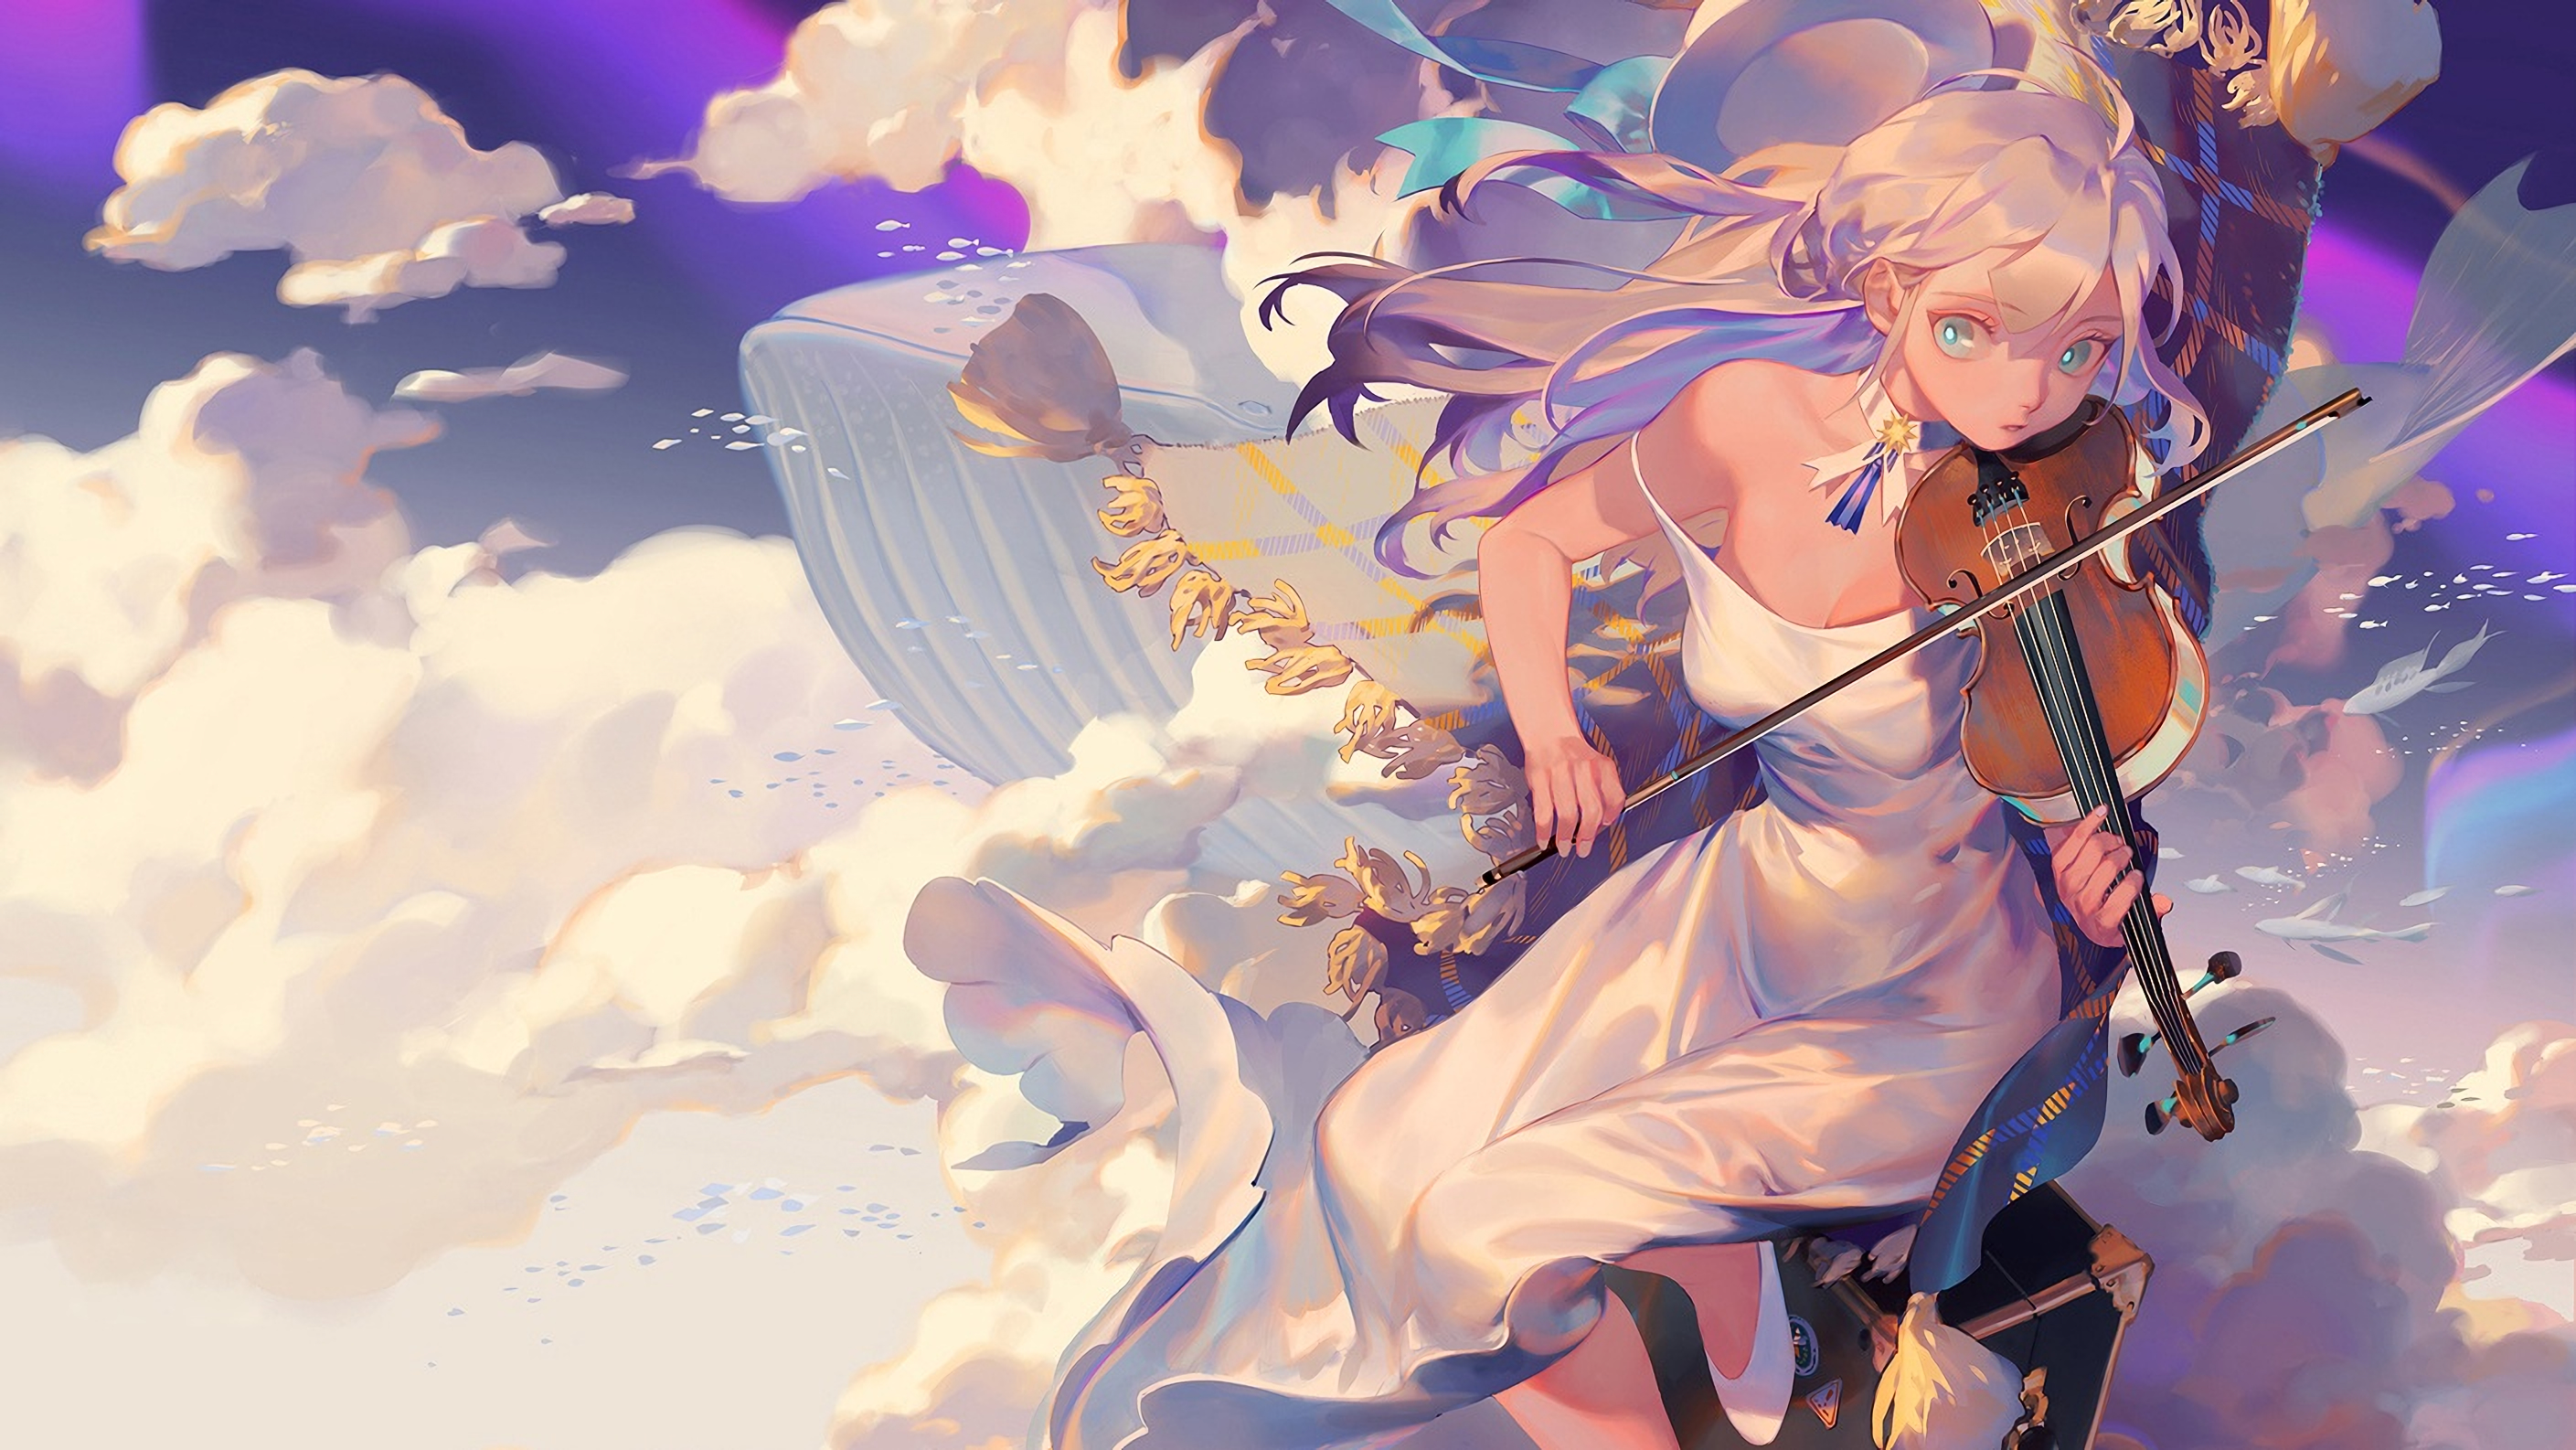 Anime 2818x1586 violin dress clouds